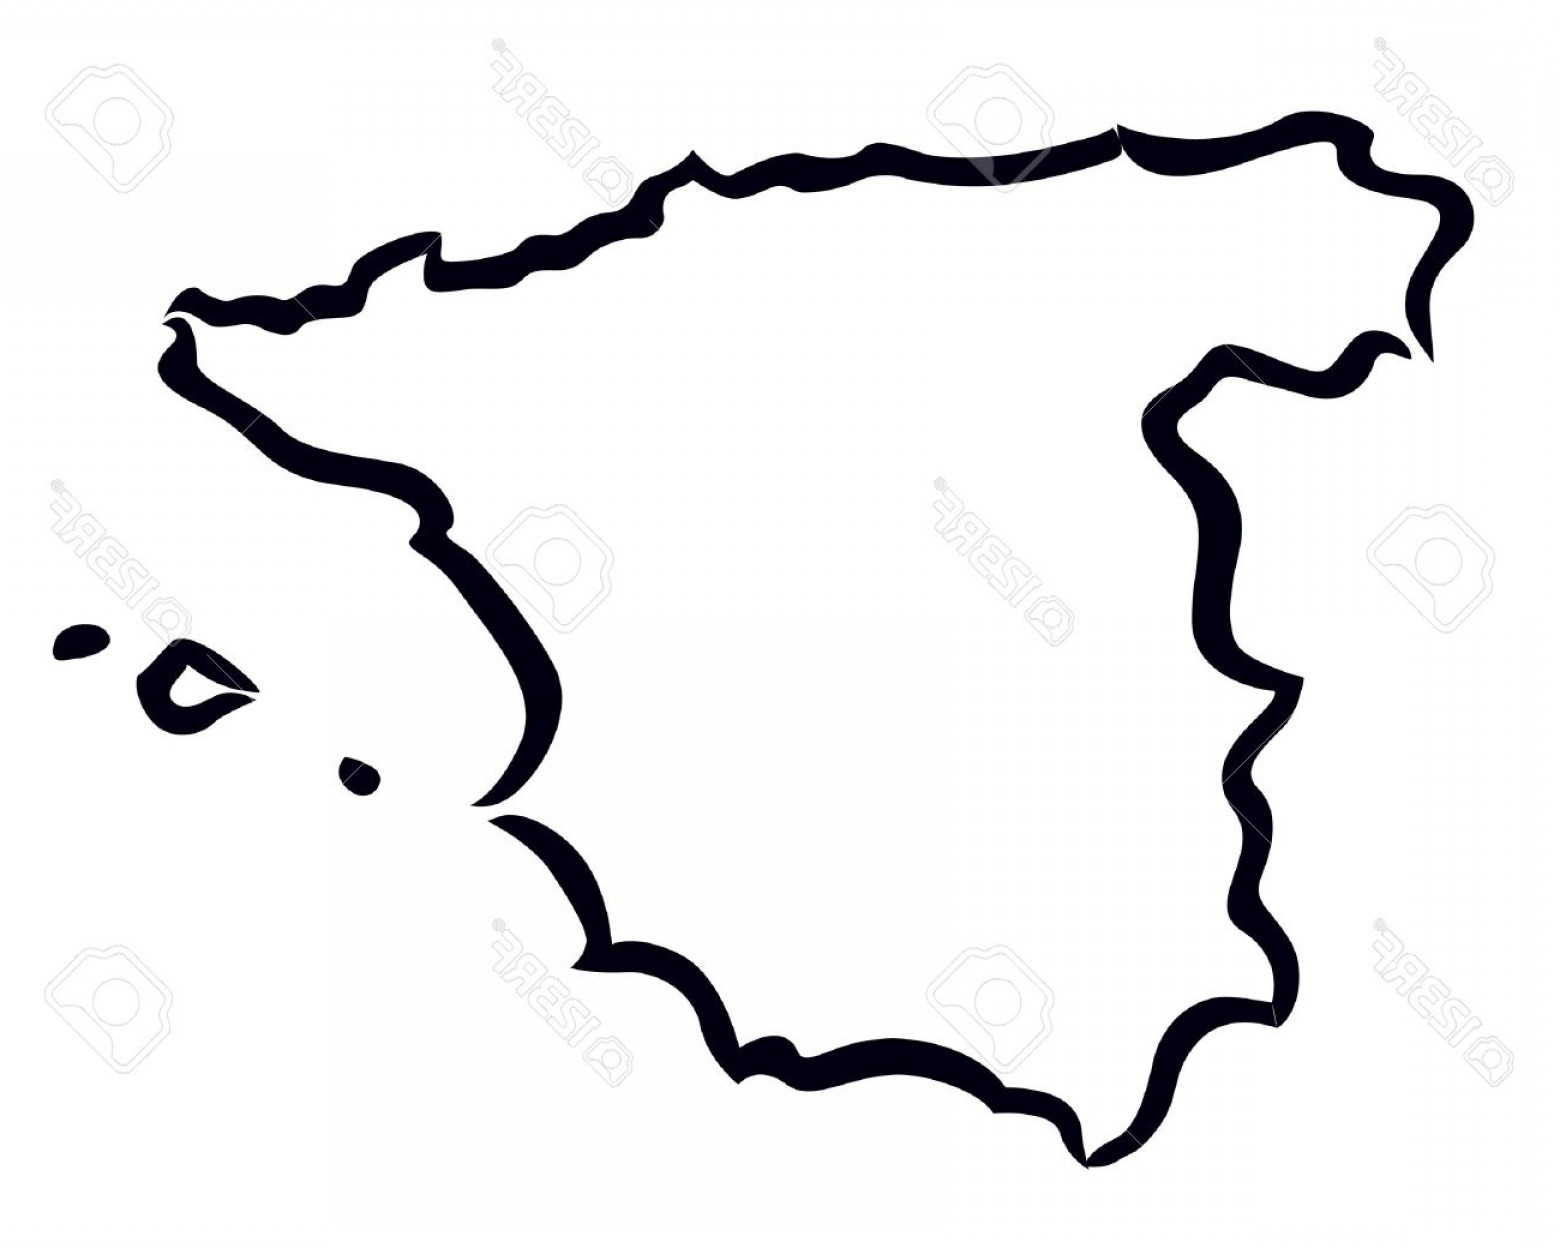 Spain Outline Vector: Photoblack Abstract Outline Of Spain Map